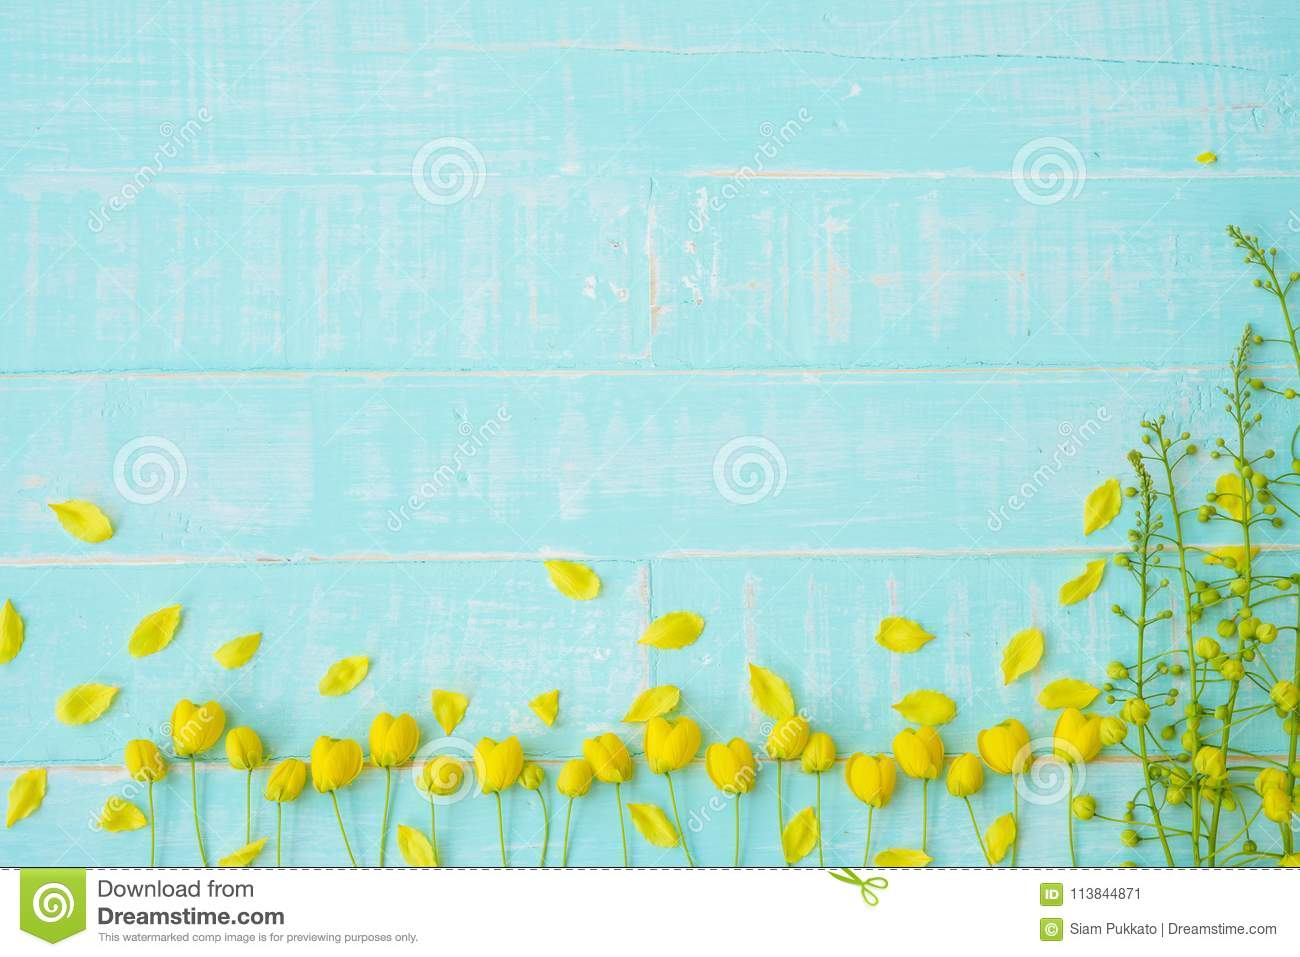 Yellow flowers on a pastel bright blue wooden background stock image download yellow flowers on a pastel bright blue wooden background stock image image of pastel mightylinksfo